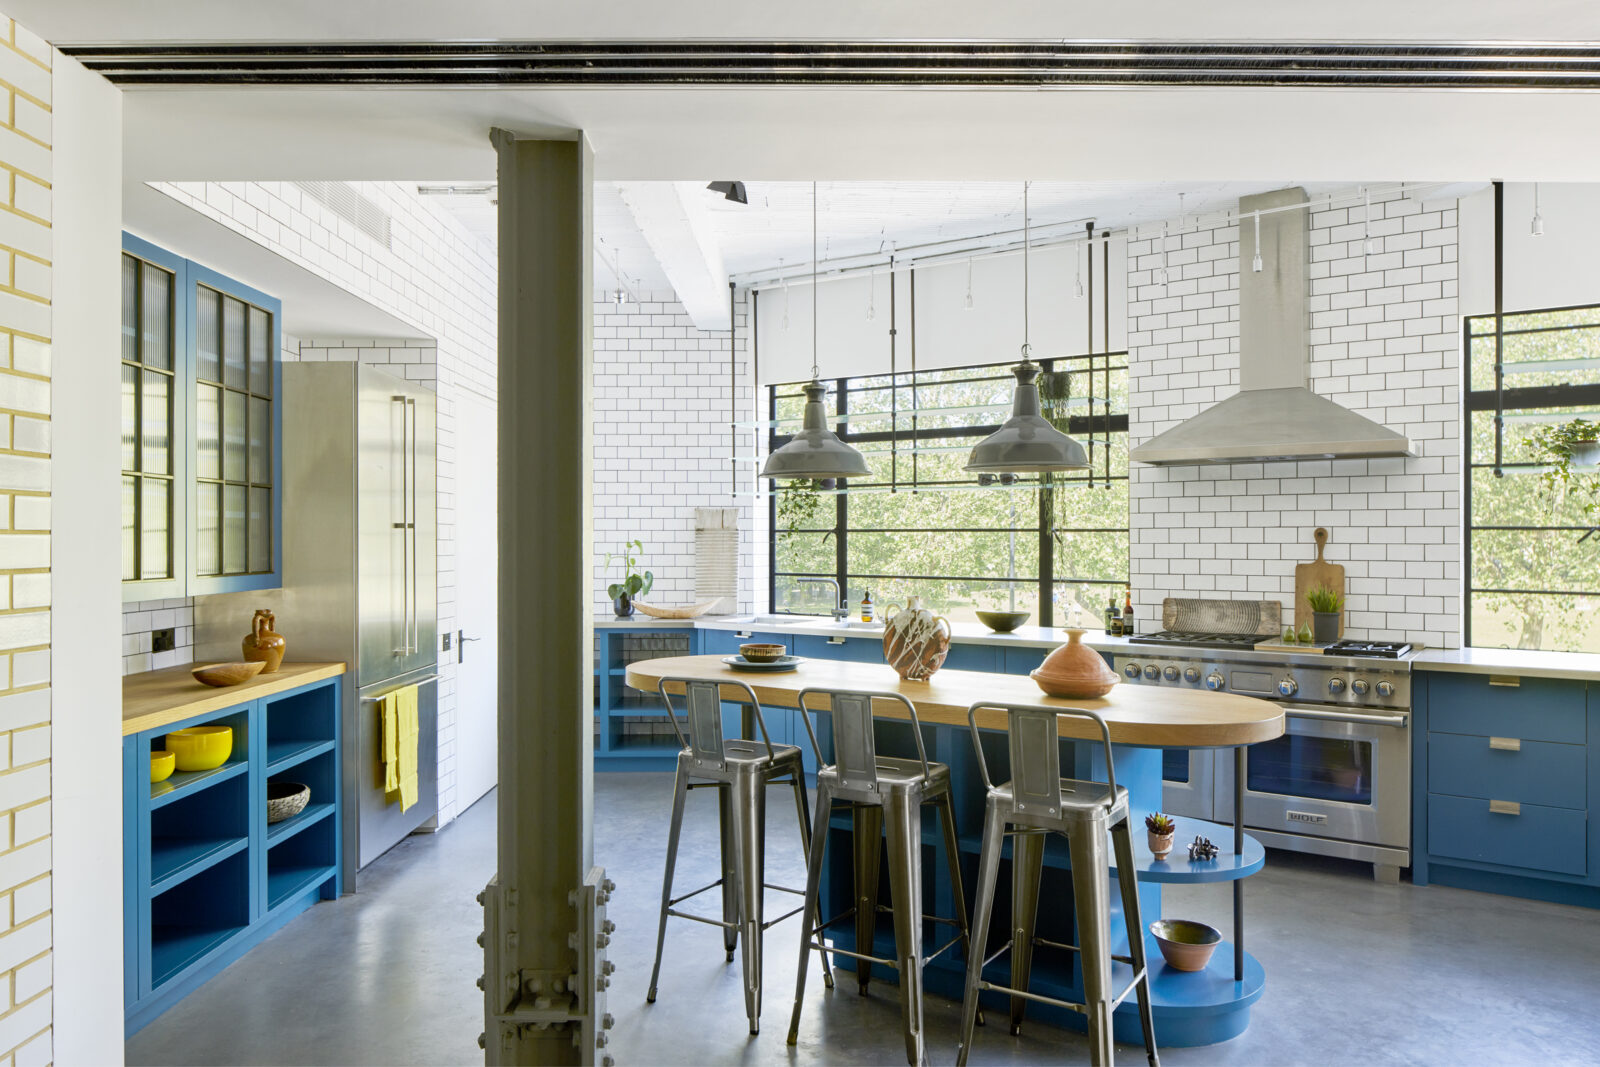 Steel beams, glazed brickwork and bright blue cabinetry in the kitchen